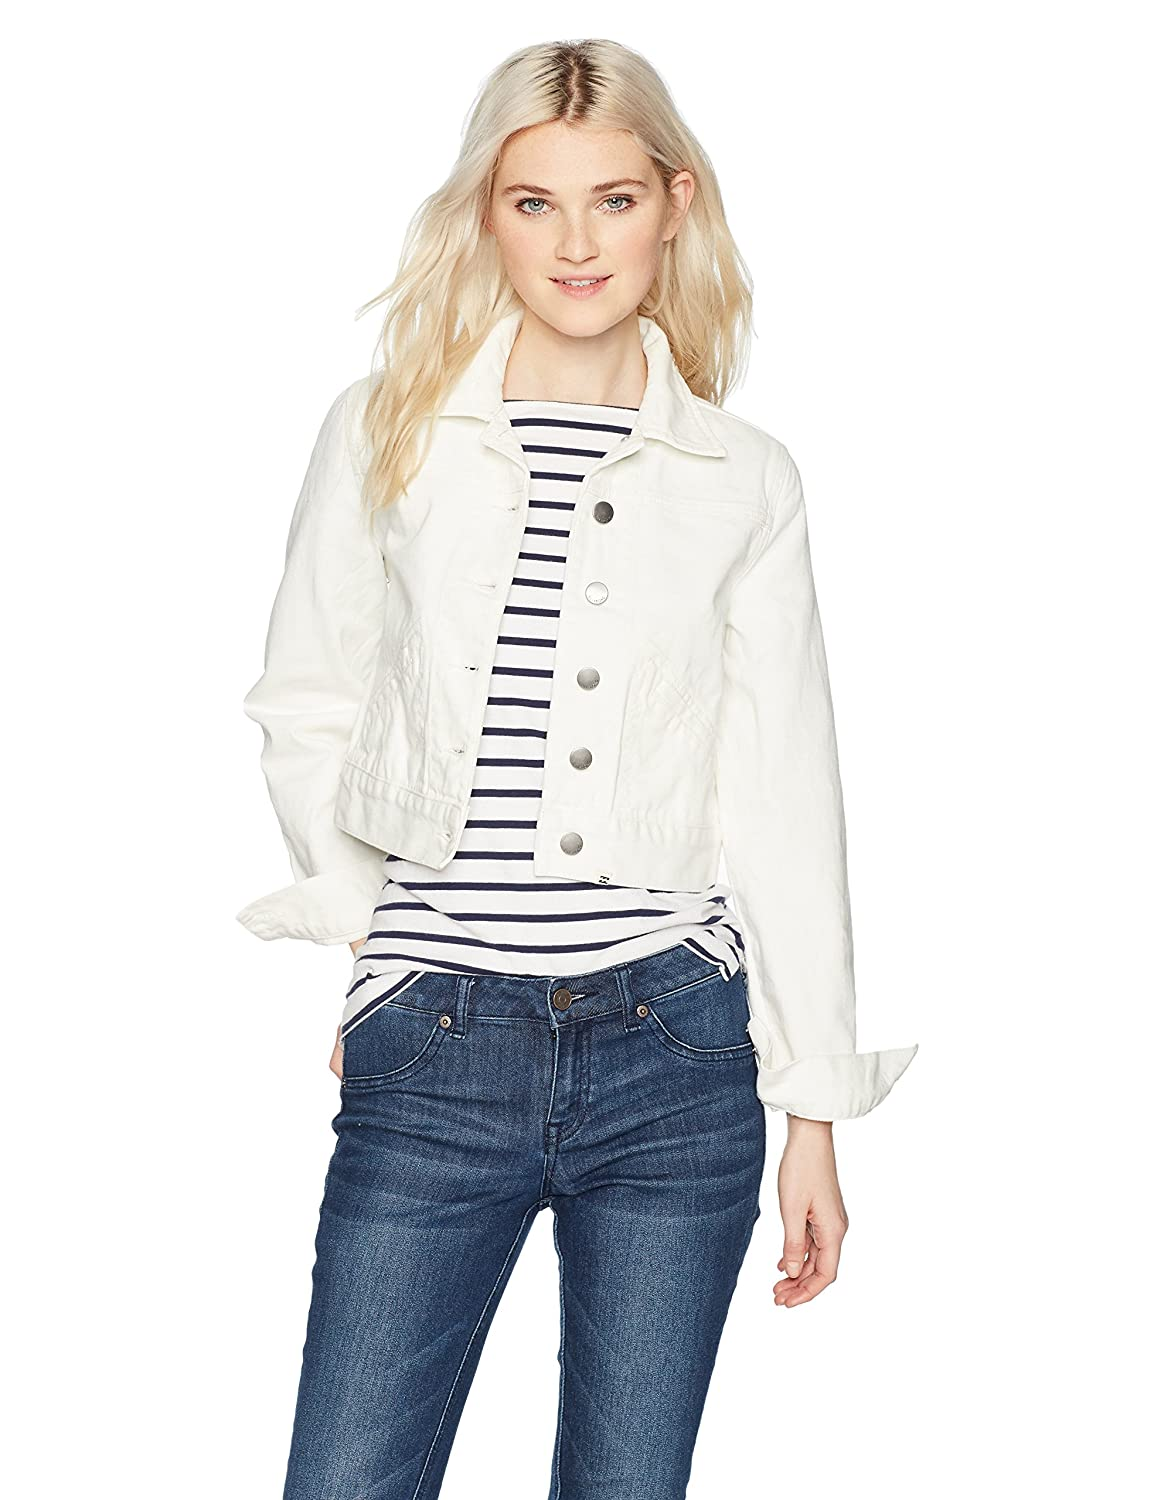 Sea bleach BILLABONG Womens Beaming Dream Jacket Denim Jacket